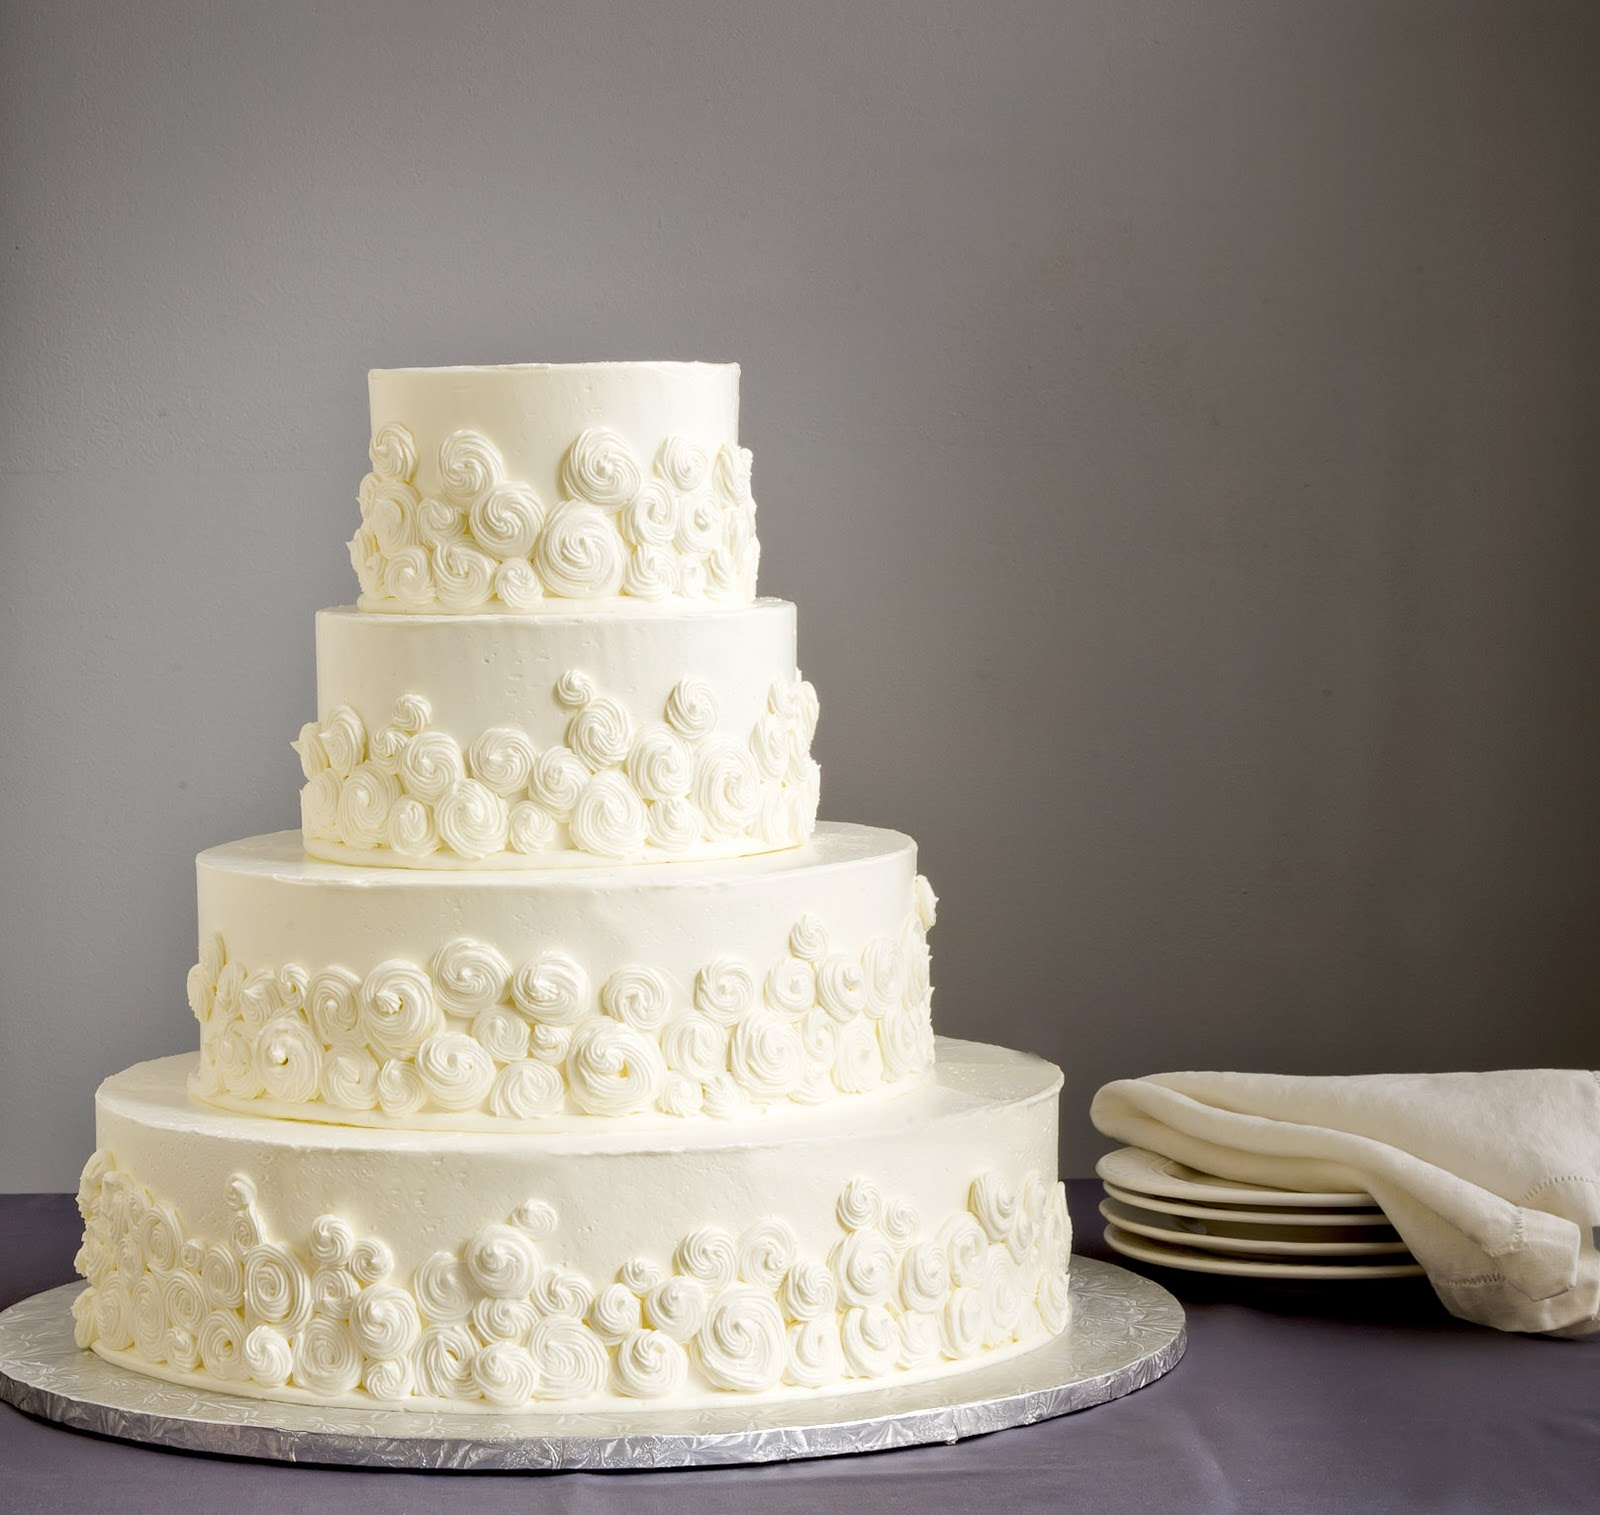 New Cake Design Images : THREE NEW Wedding Cake Ideas Culinary Crossroads ...